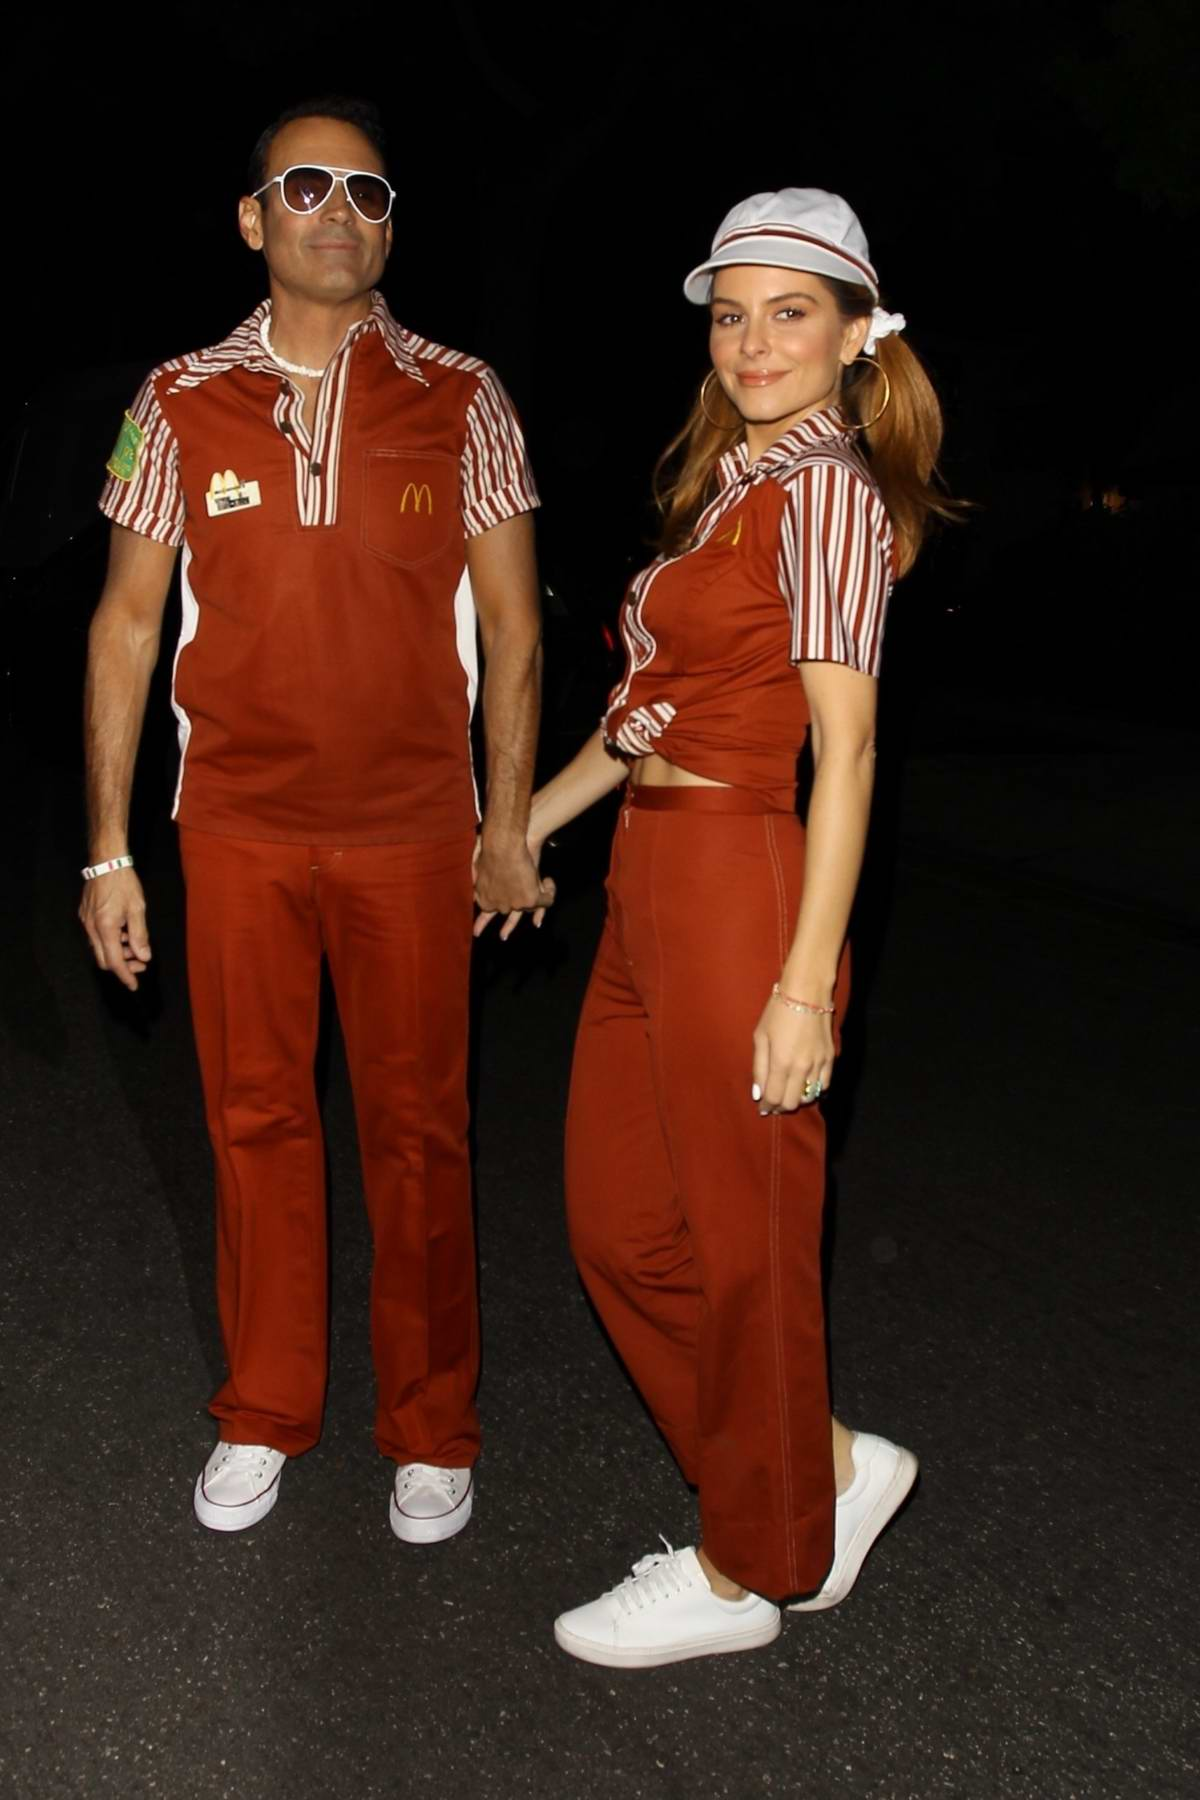 Maria Menounos attends the Casamigos Halloween Party 2019 in Beverly Hills, Los Angeles